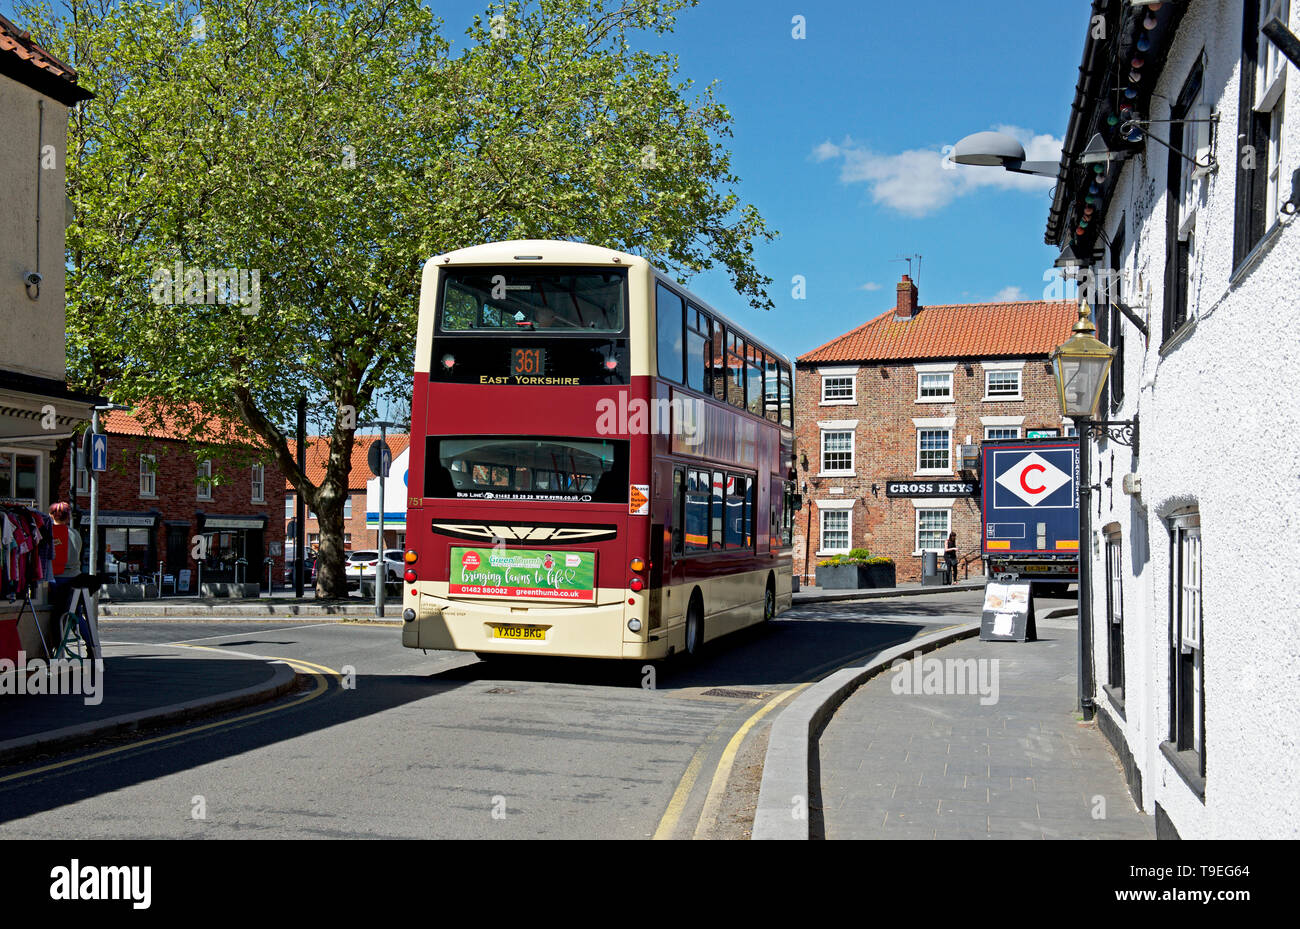 Bus in Crowle, North Lincolnshire, England UK - Stock Image